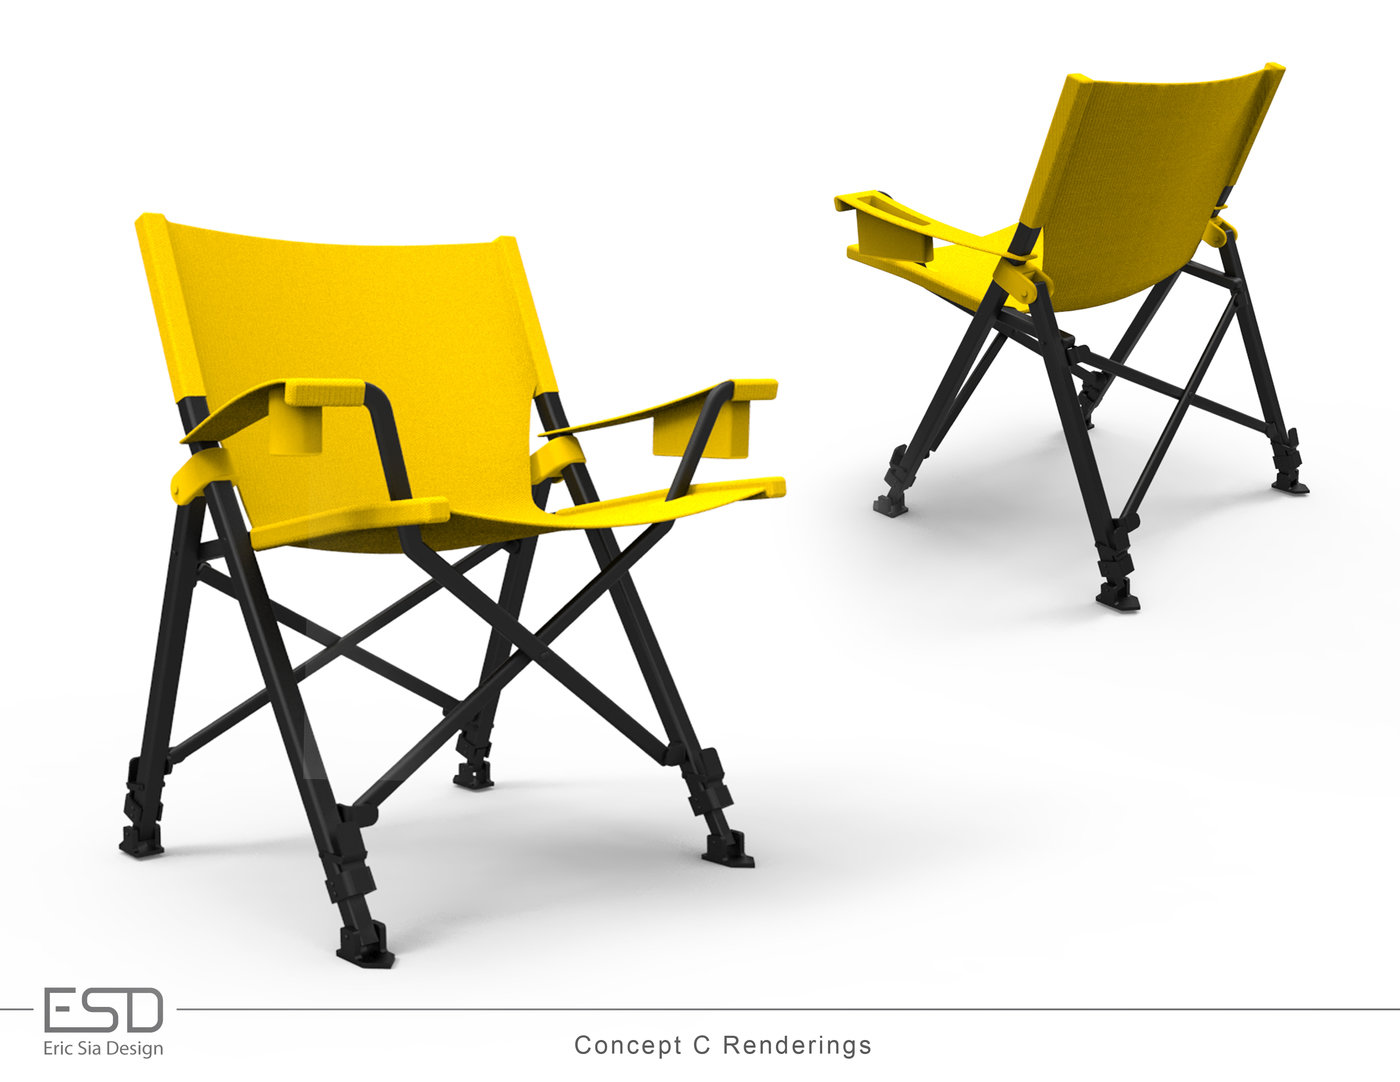 Excellent Folding Chairs Concepts By Eric Sia At Coroflot Com Ncnpc Chair Design For Home Ncnpcorg